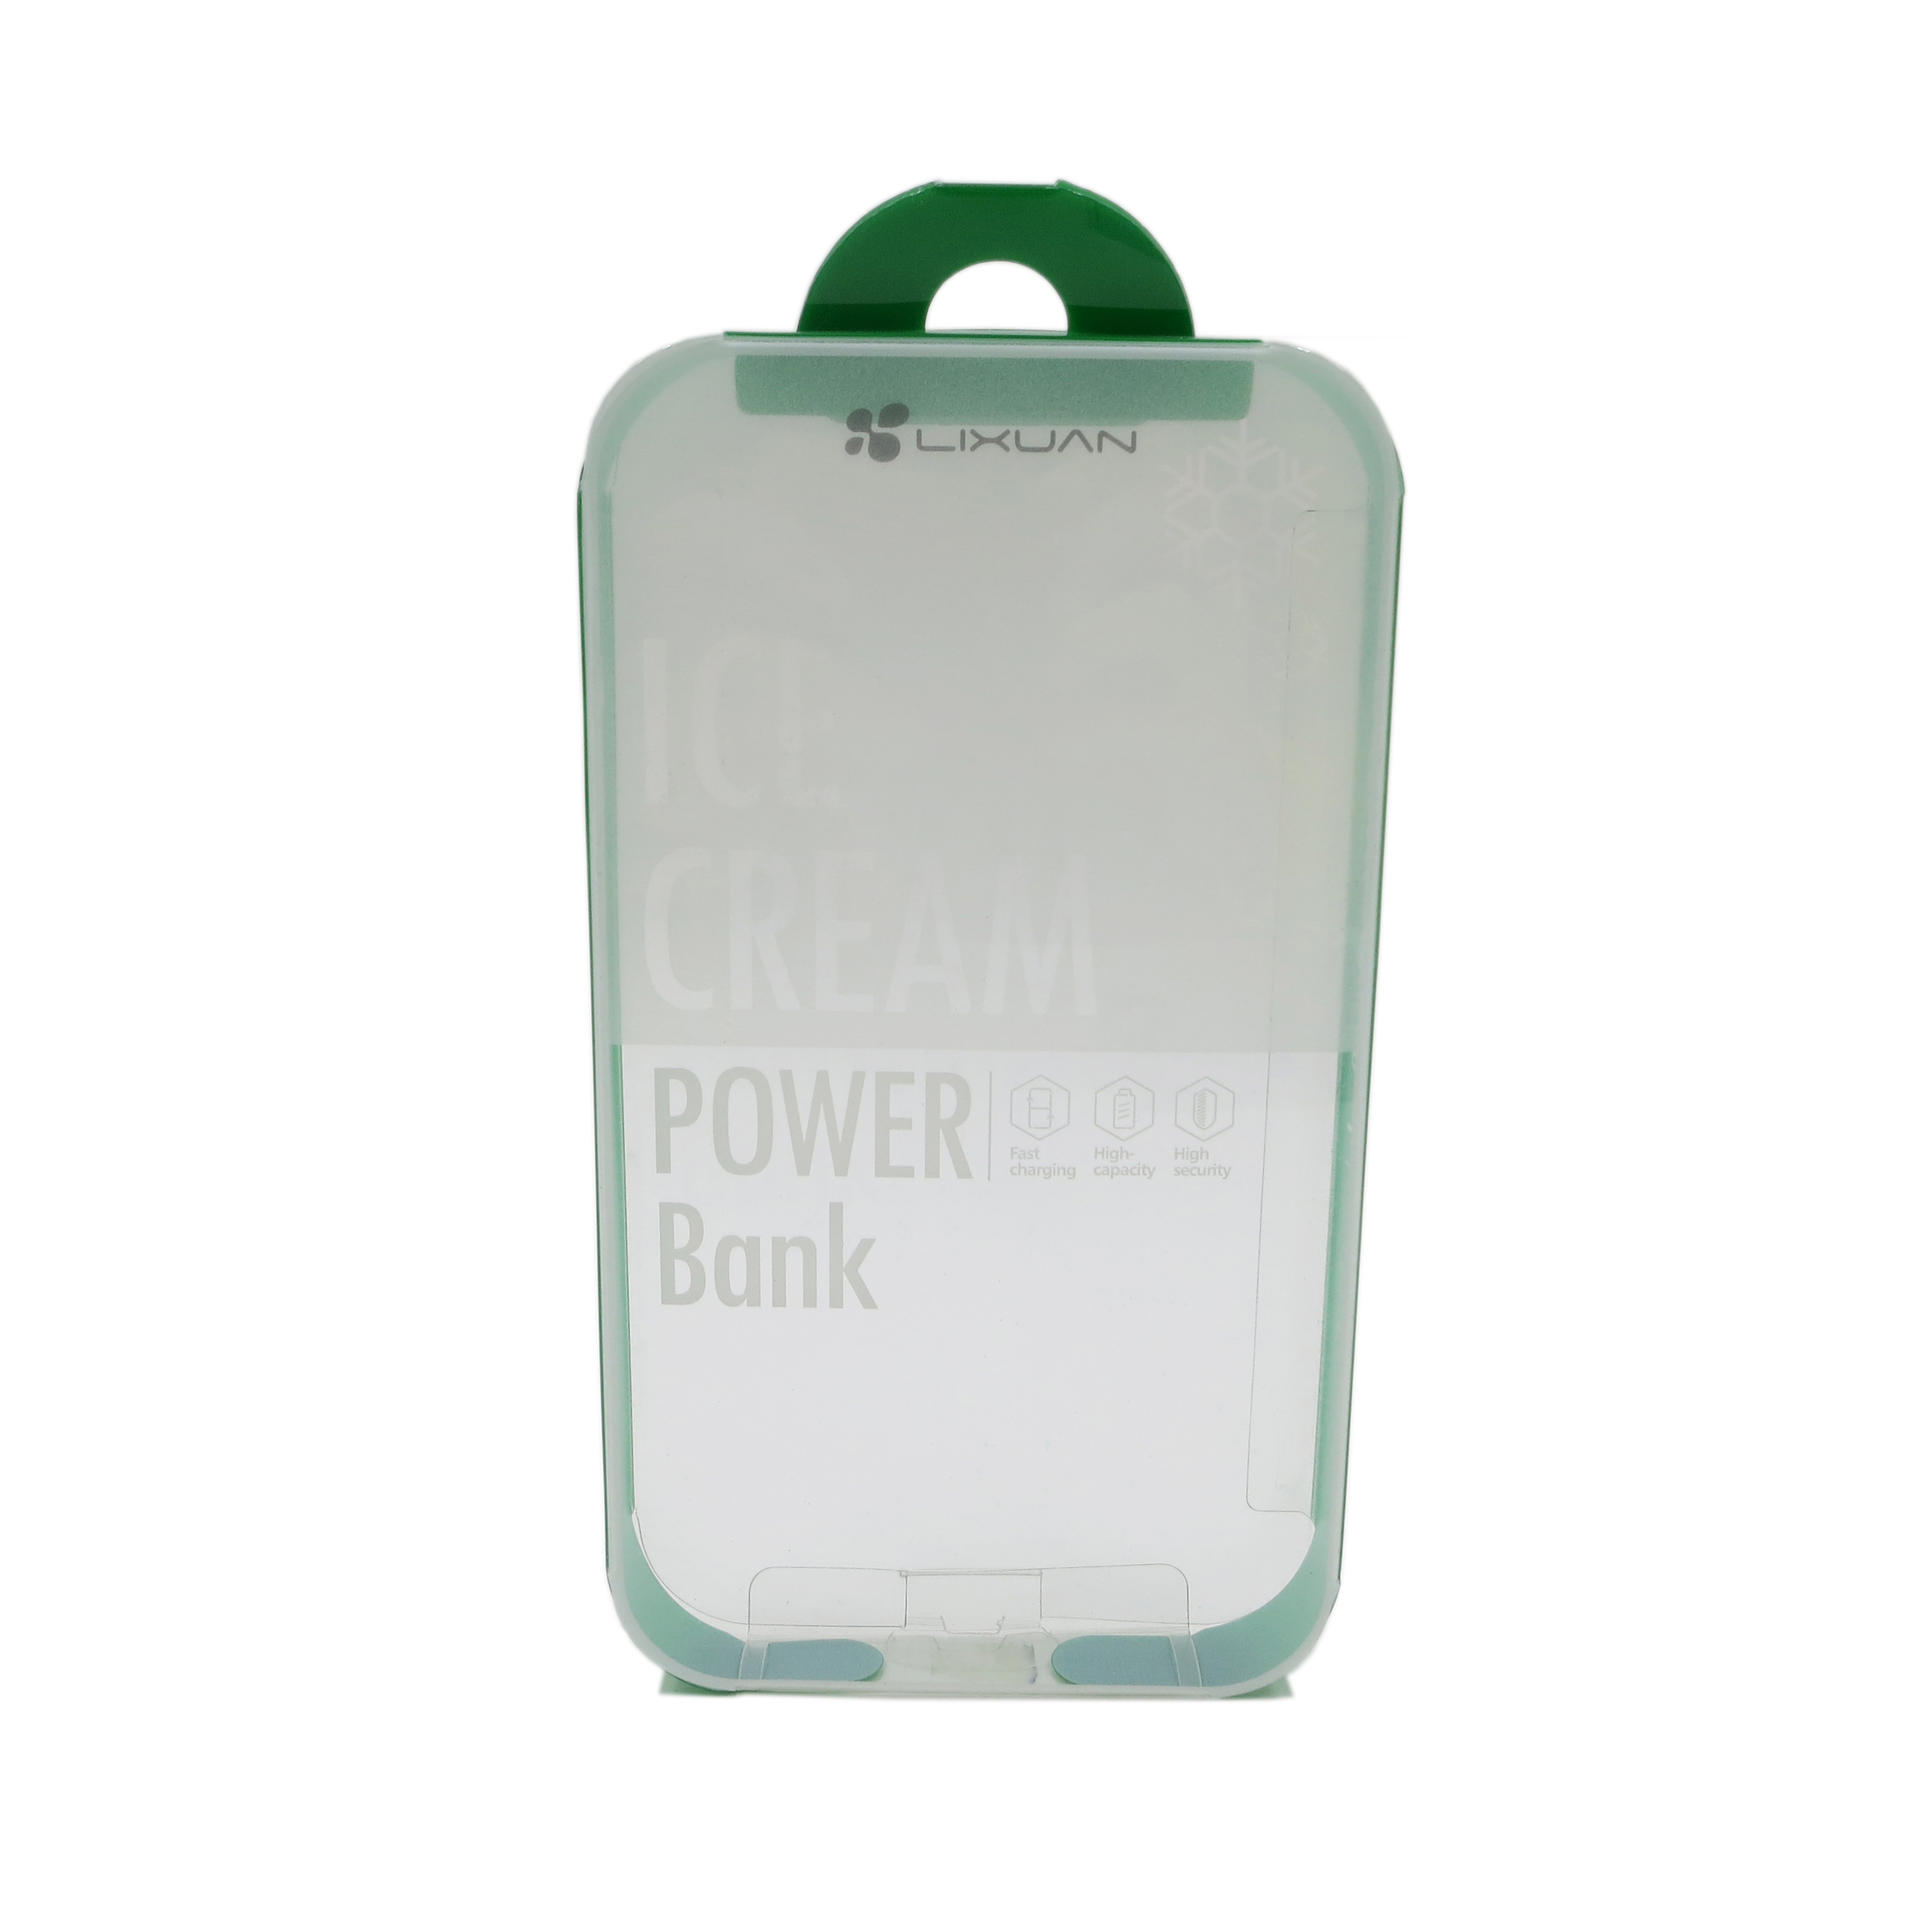 Semi-transparent Plastic Packaging Box for Power Bank